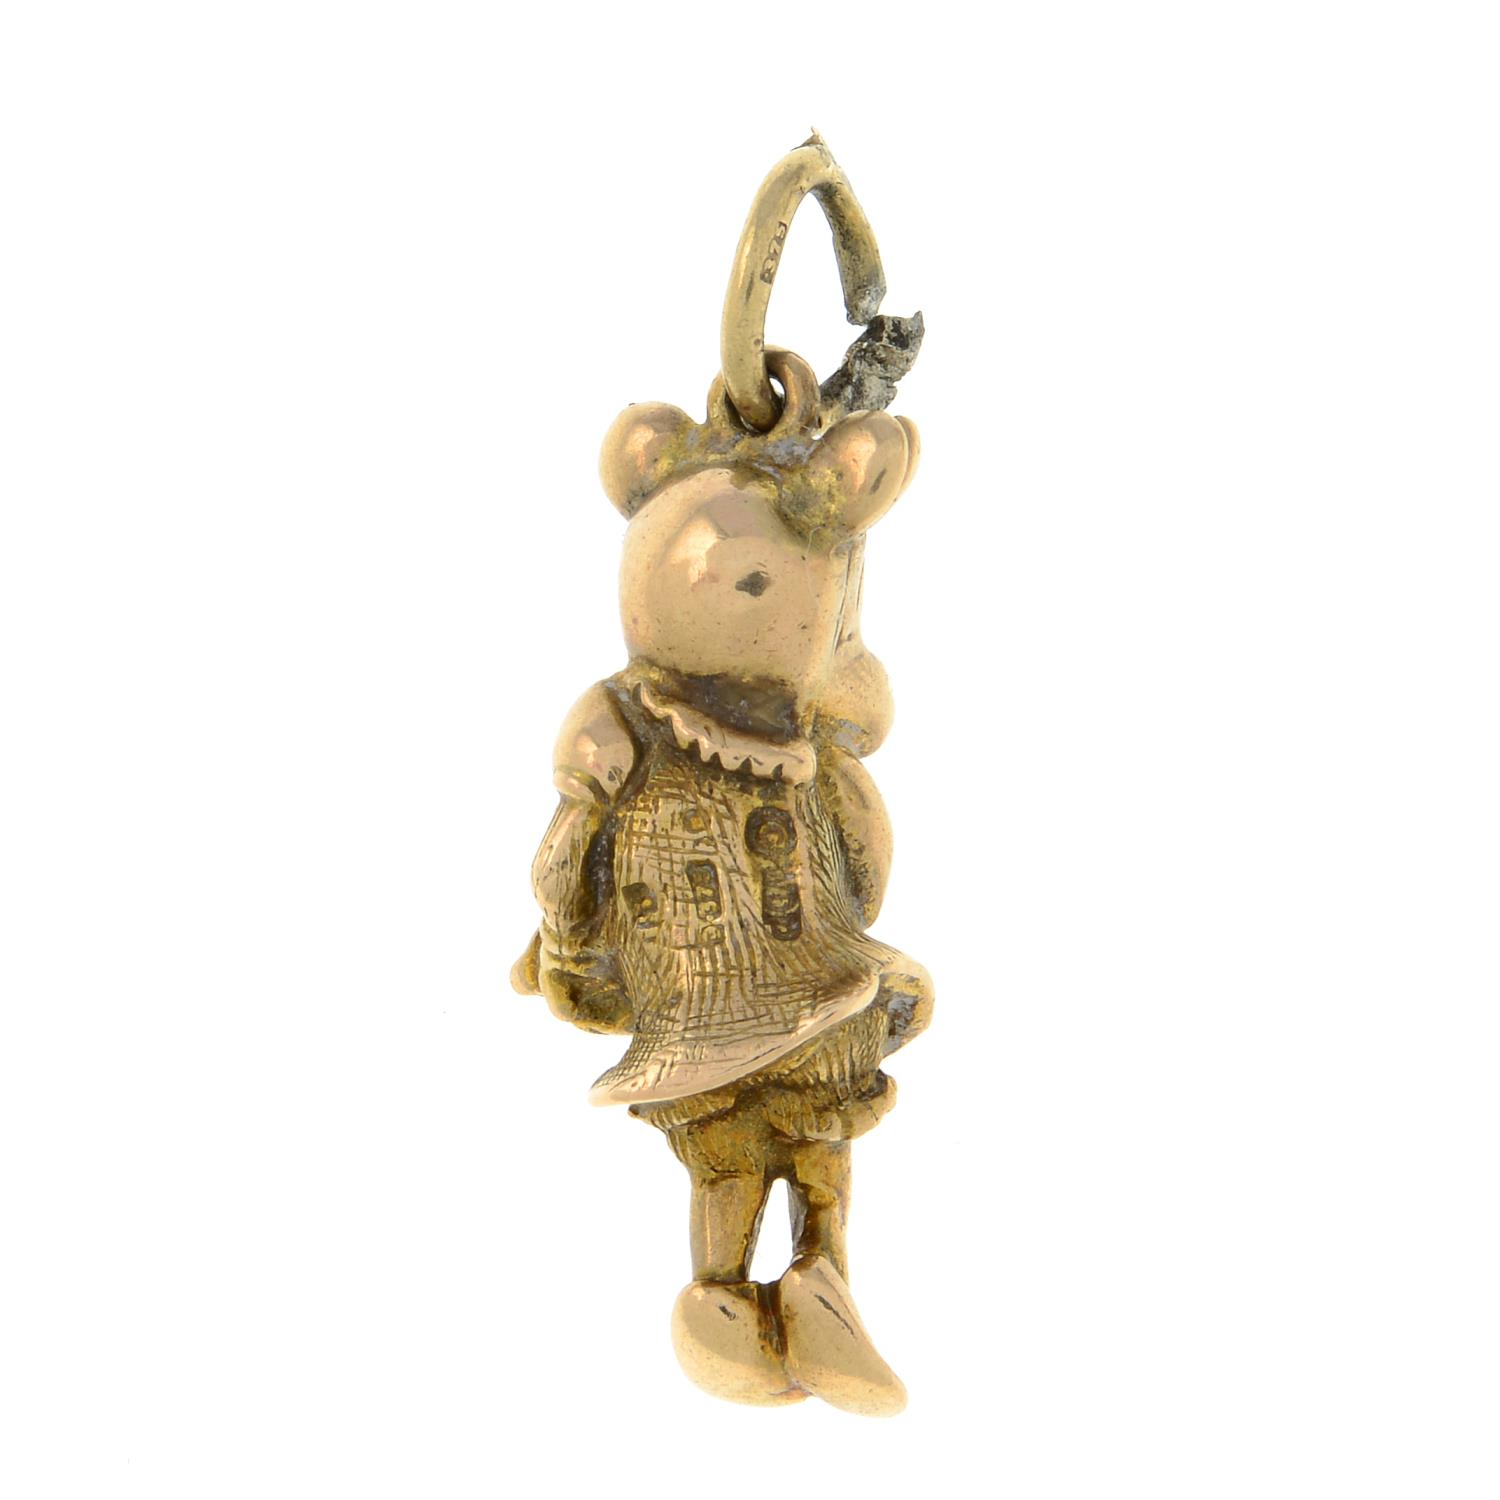 A 9ct gold 'Minnie Mouse' charm, with pink sapphire eye detail.Hallmarks for London.Length 2.9cms. - Image 2 of 2